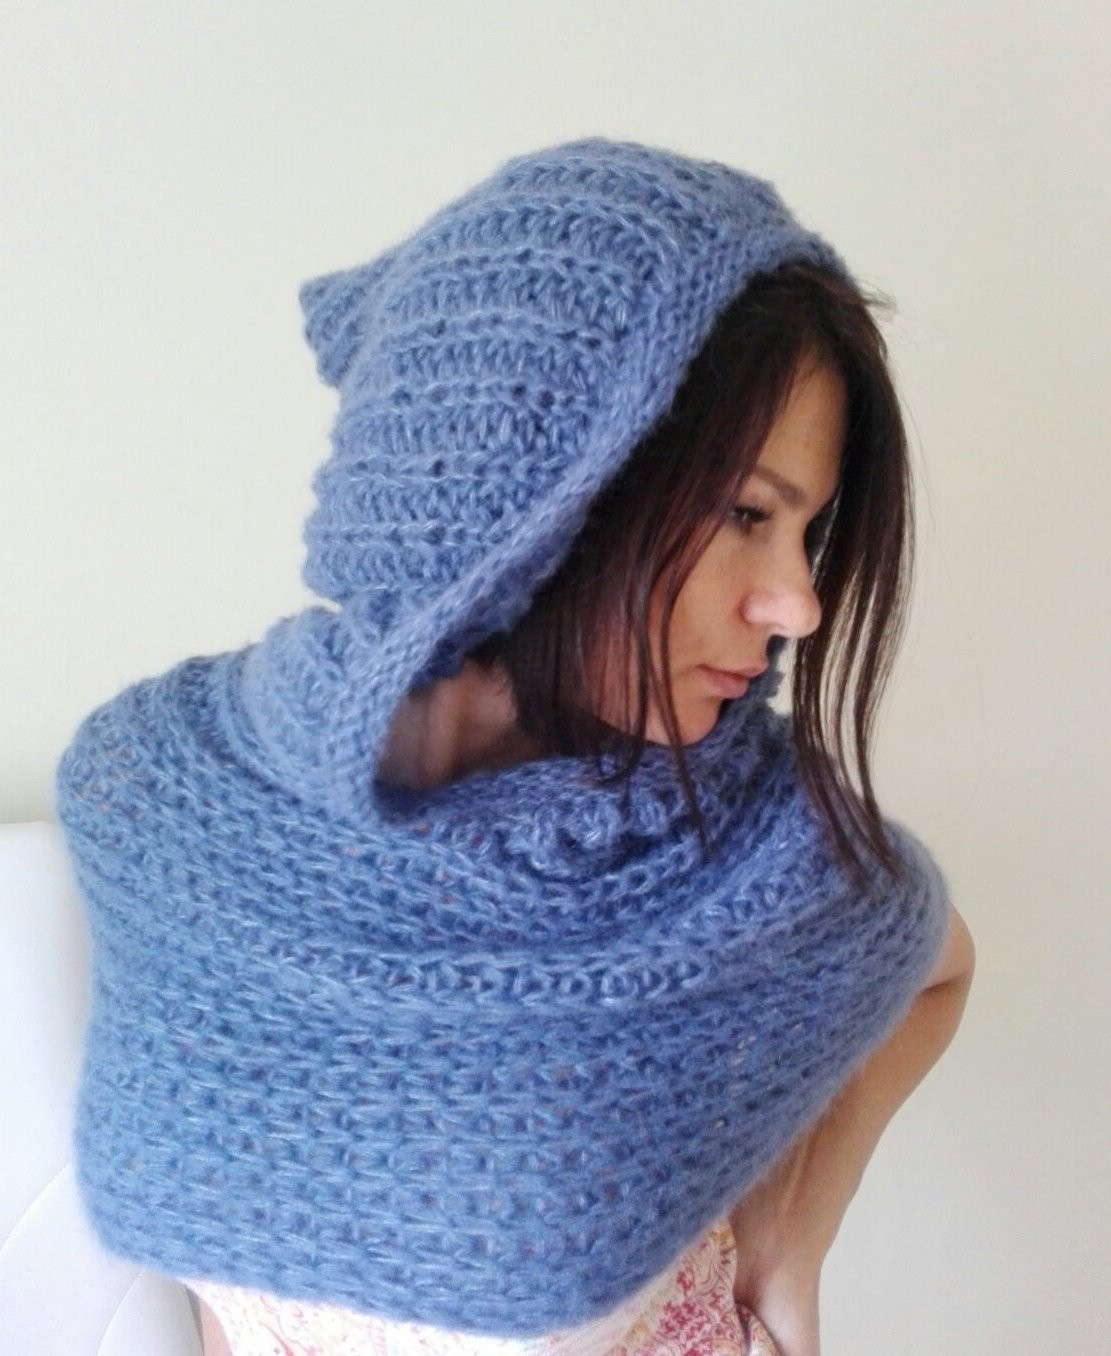 Awesome Denim Blue Knitted Neck Warmer with Hood Oversized Hooded Knitted Neck Warmer Of Amazing 47 Ideas Knitted Neck Warmer